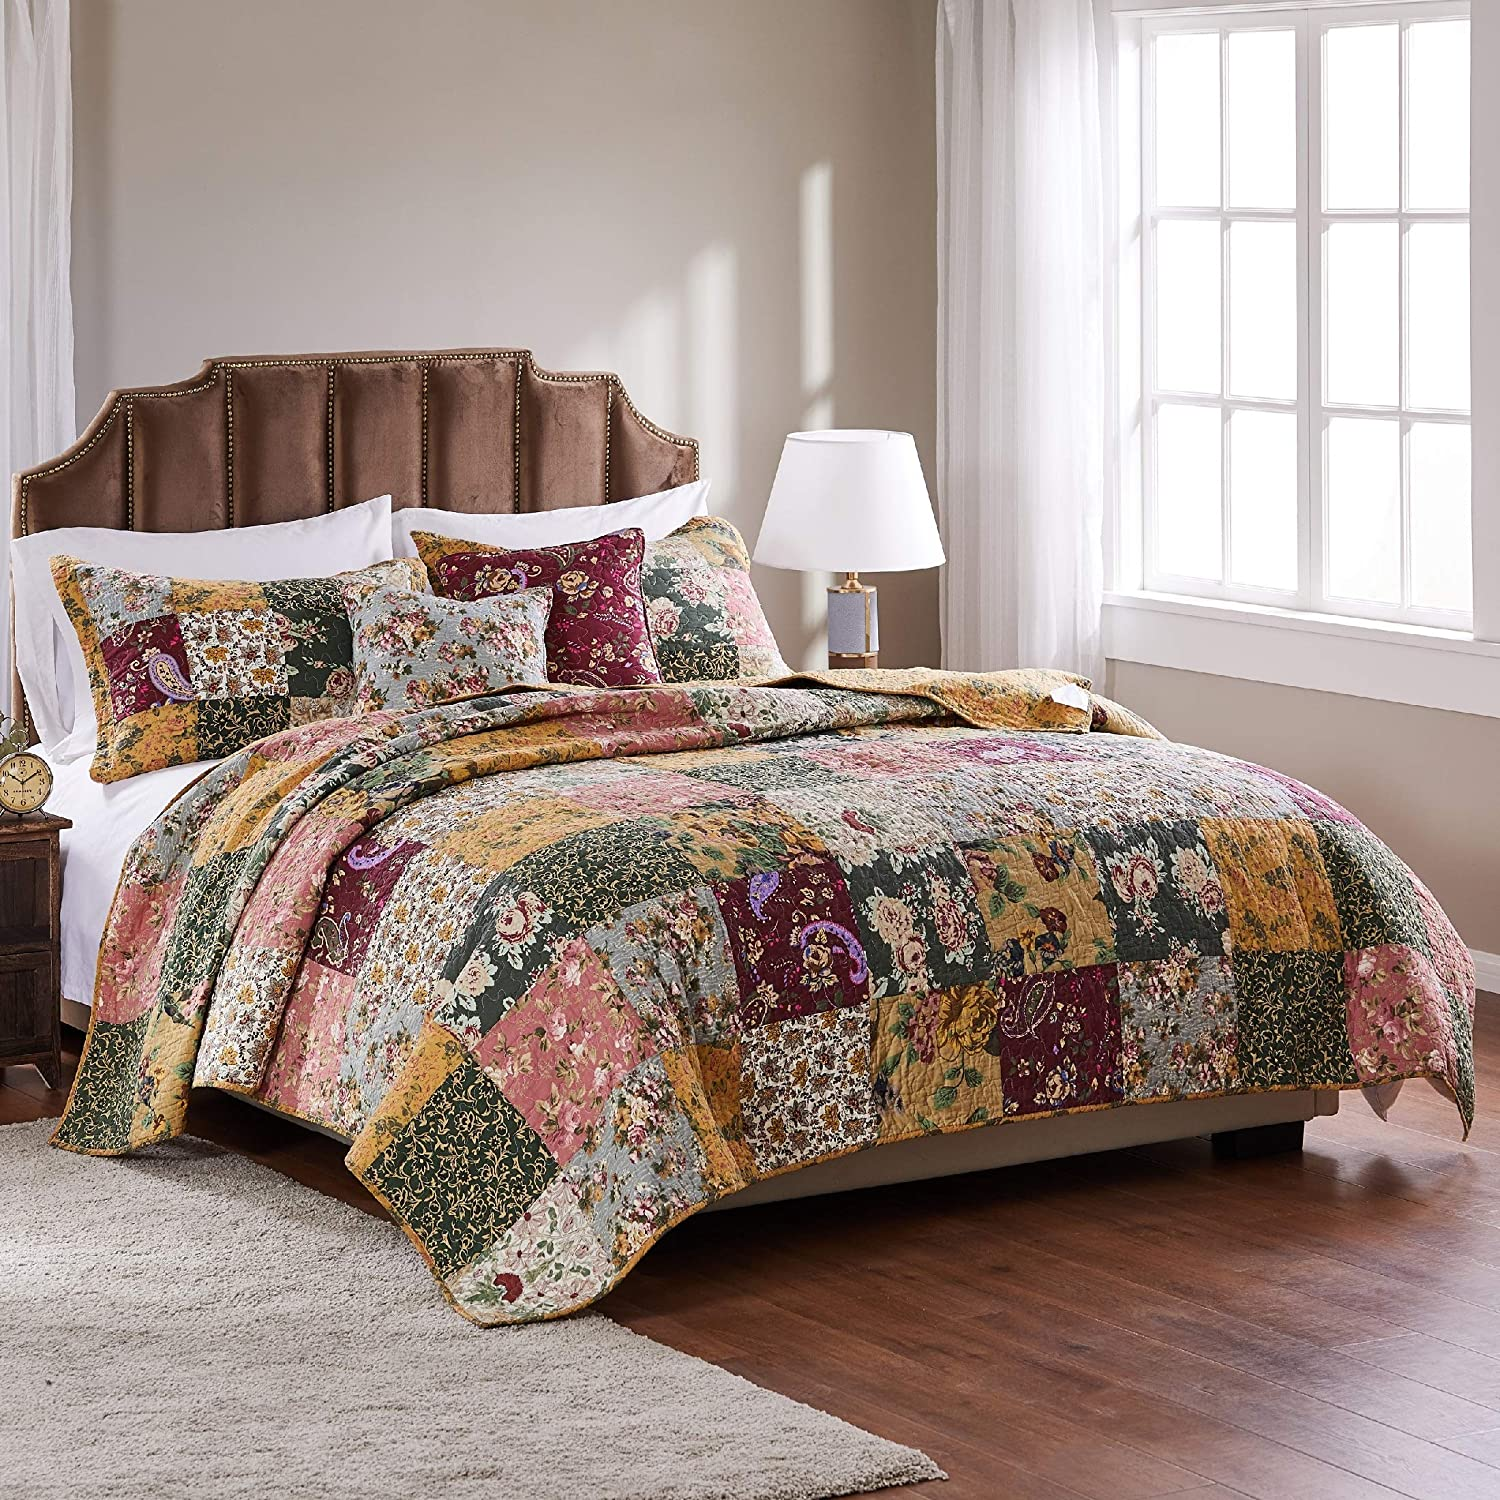 Greenland Home Antique Chic Cotton Patchwork Quilt Set, 5-Piece Full/Queen, Multi